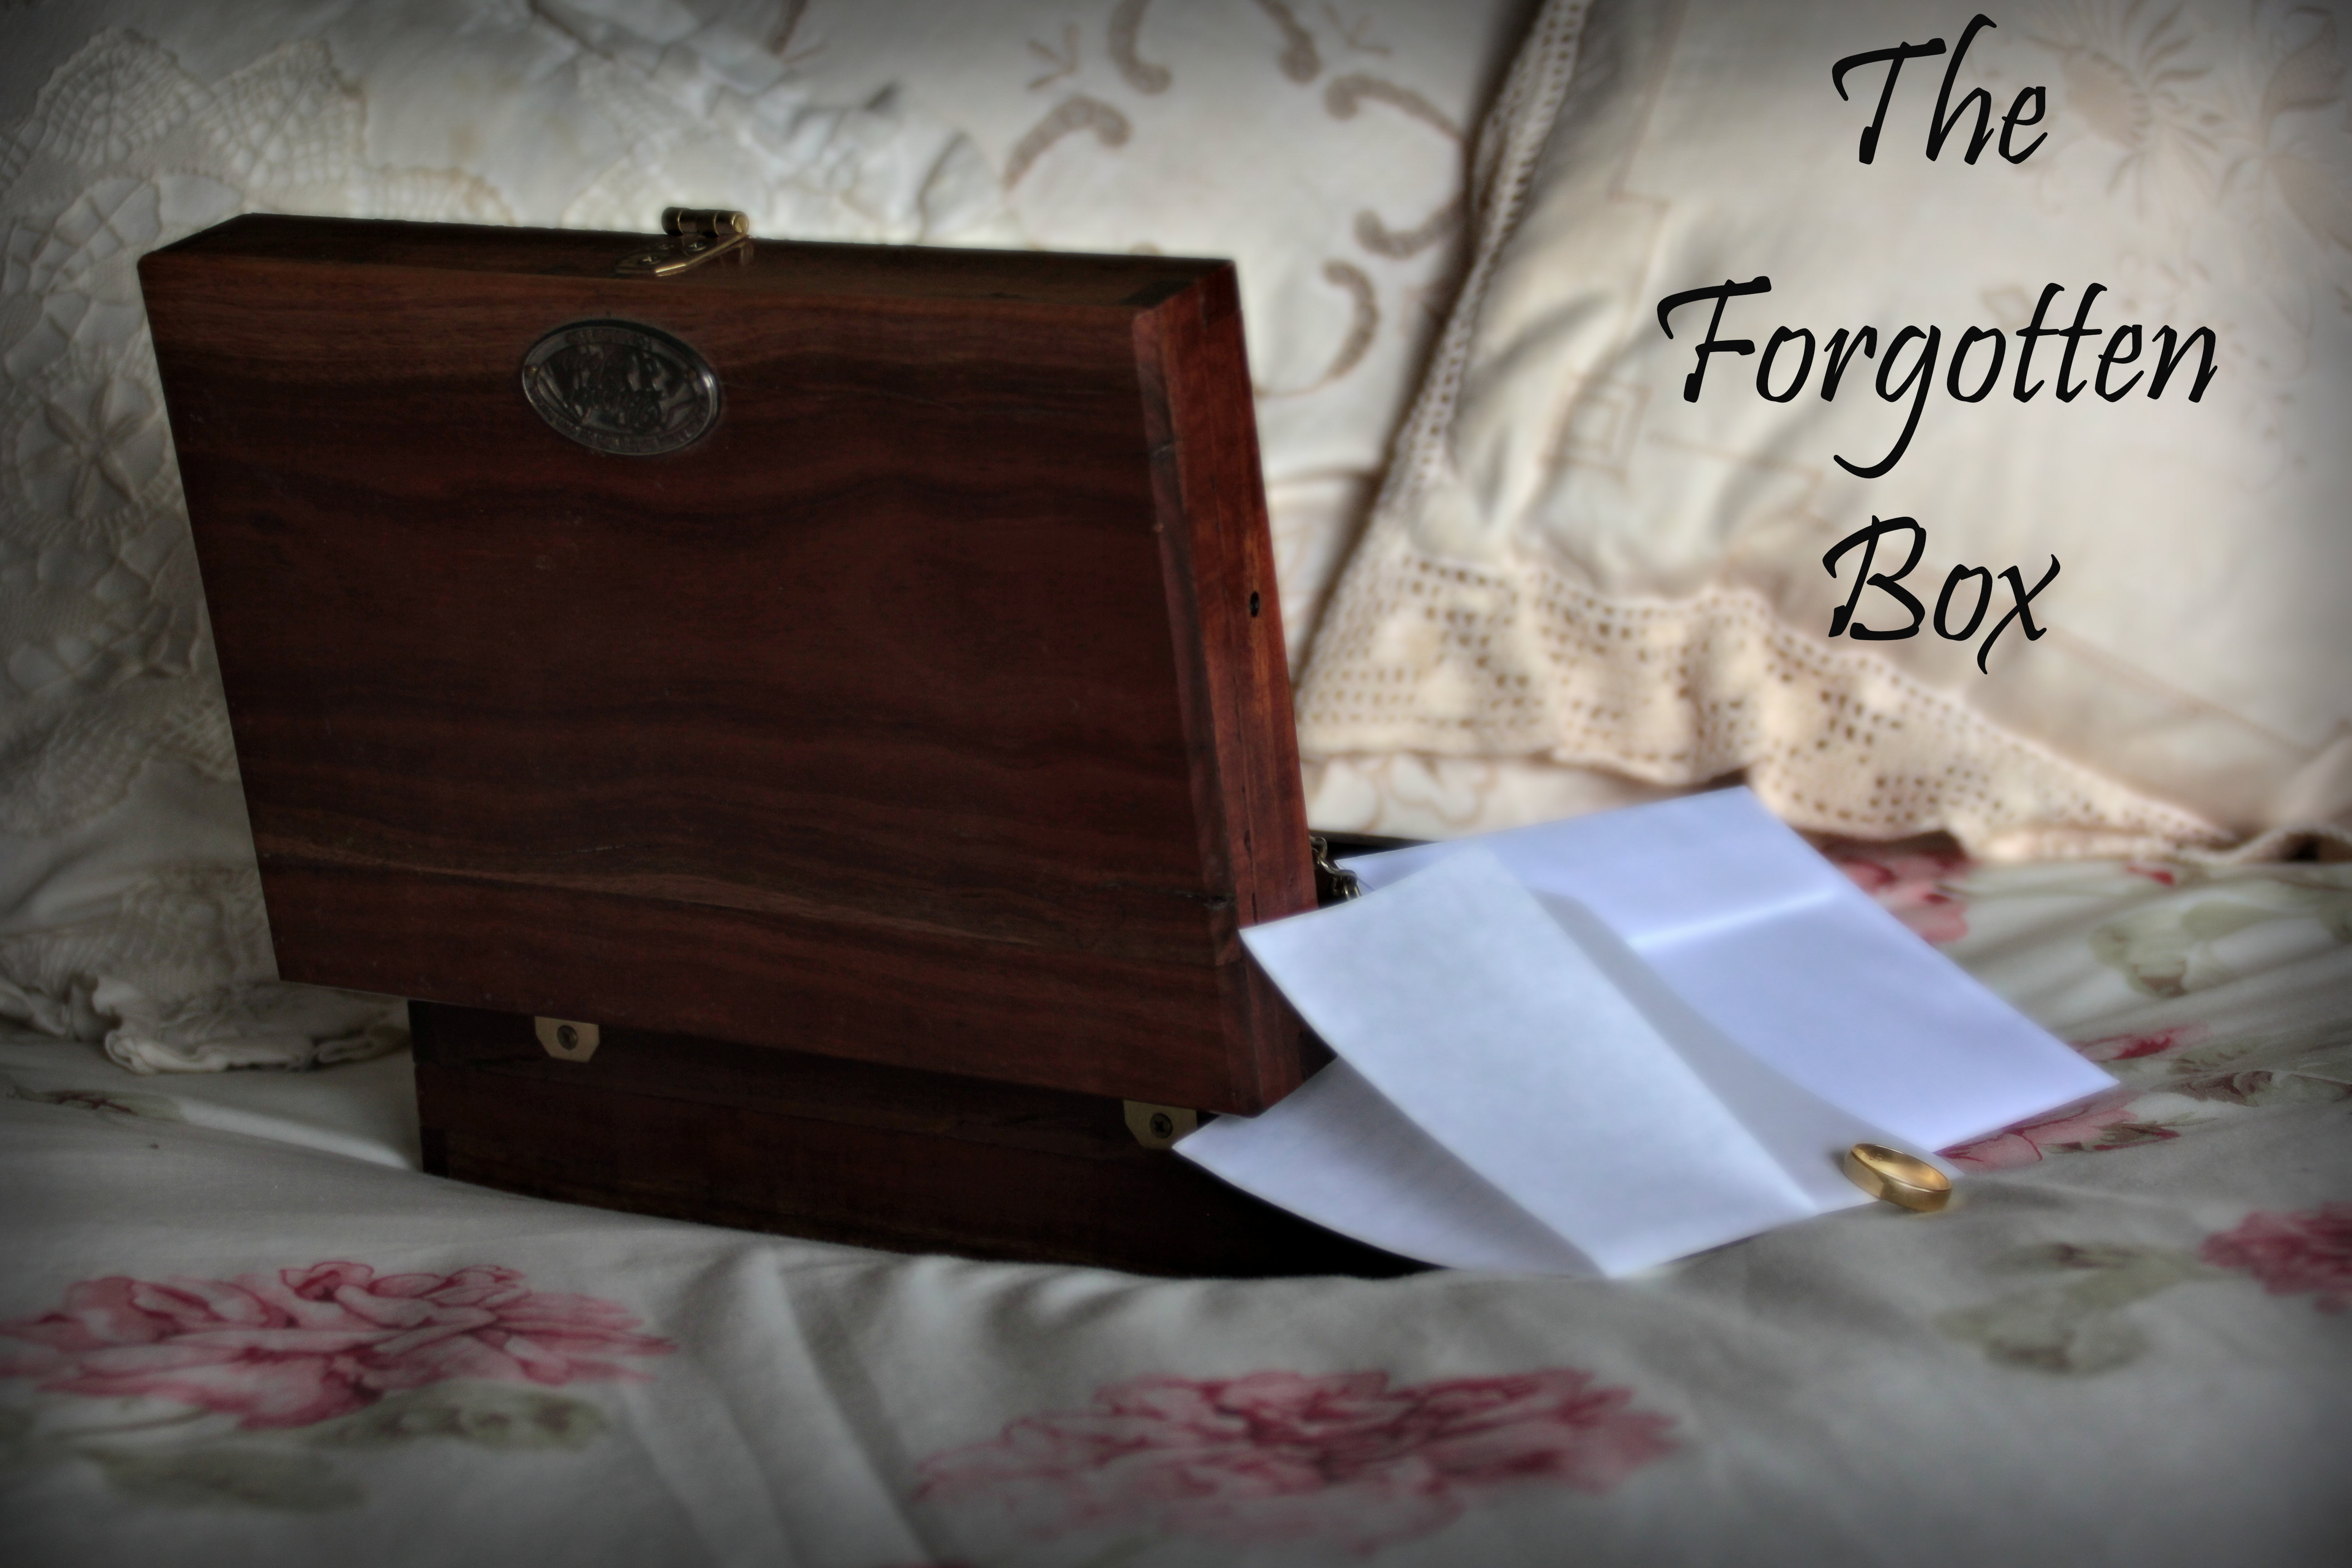 The Forgotten Box